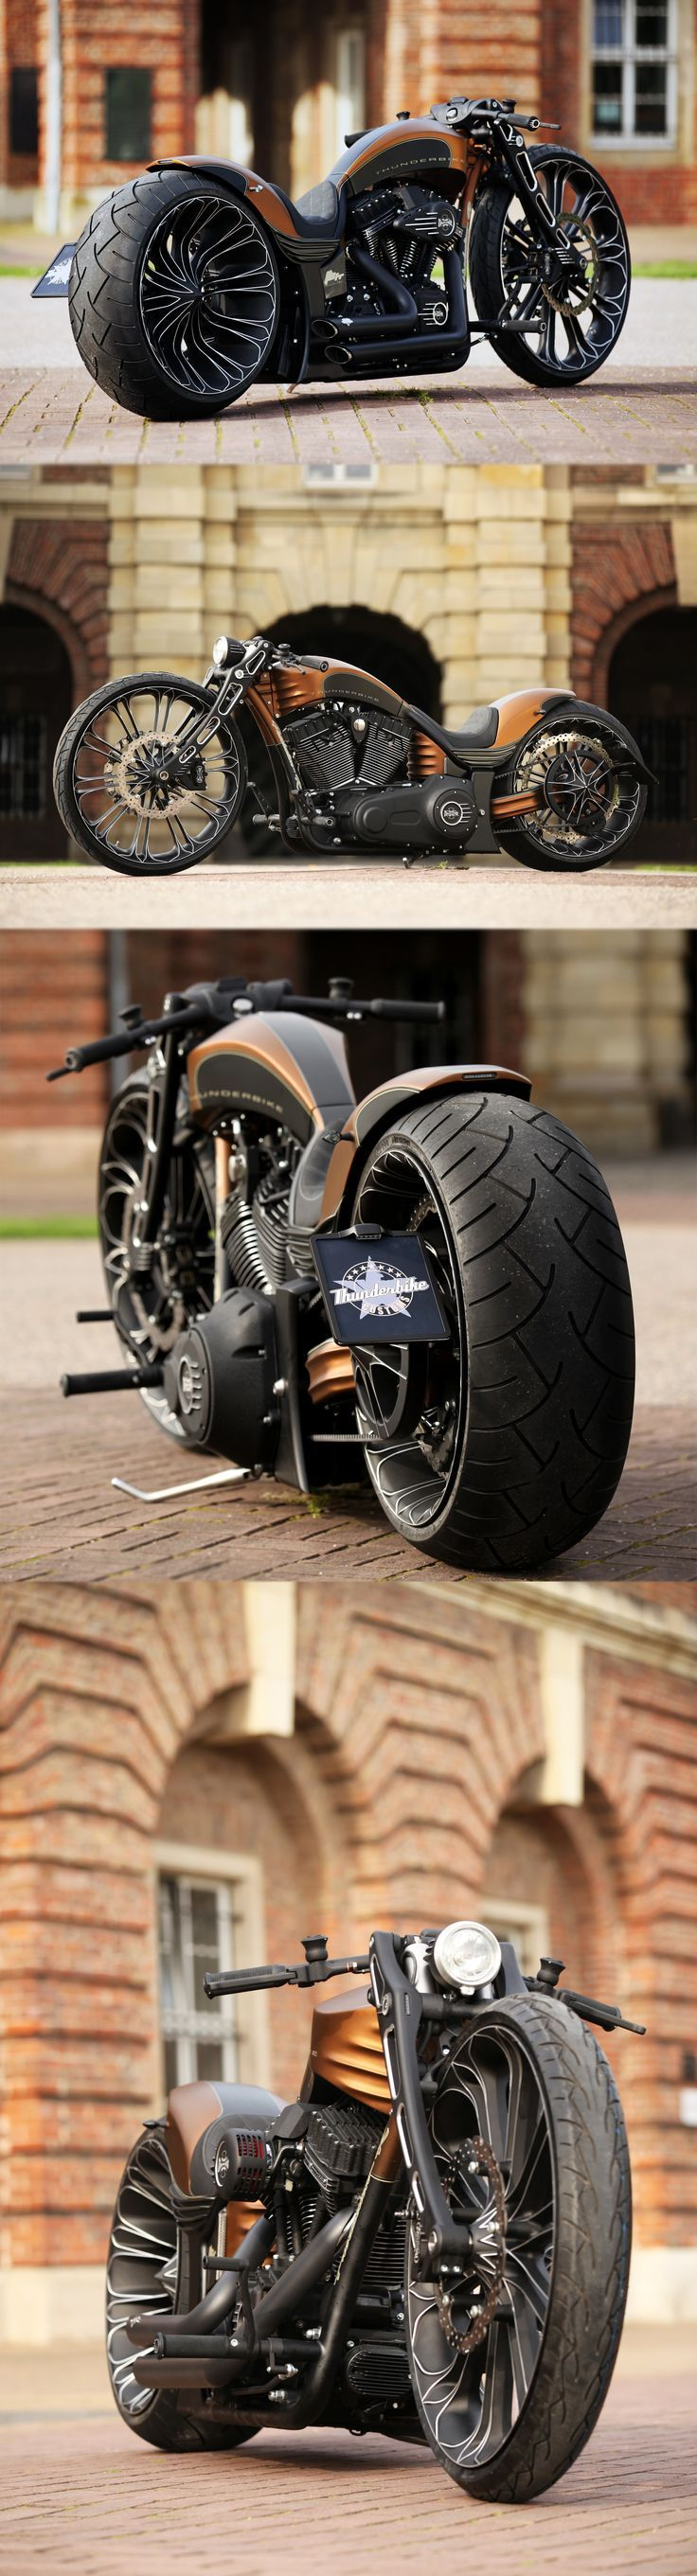 Quadrocycles from the Ural with their own hands - its possible